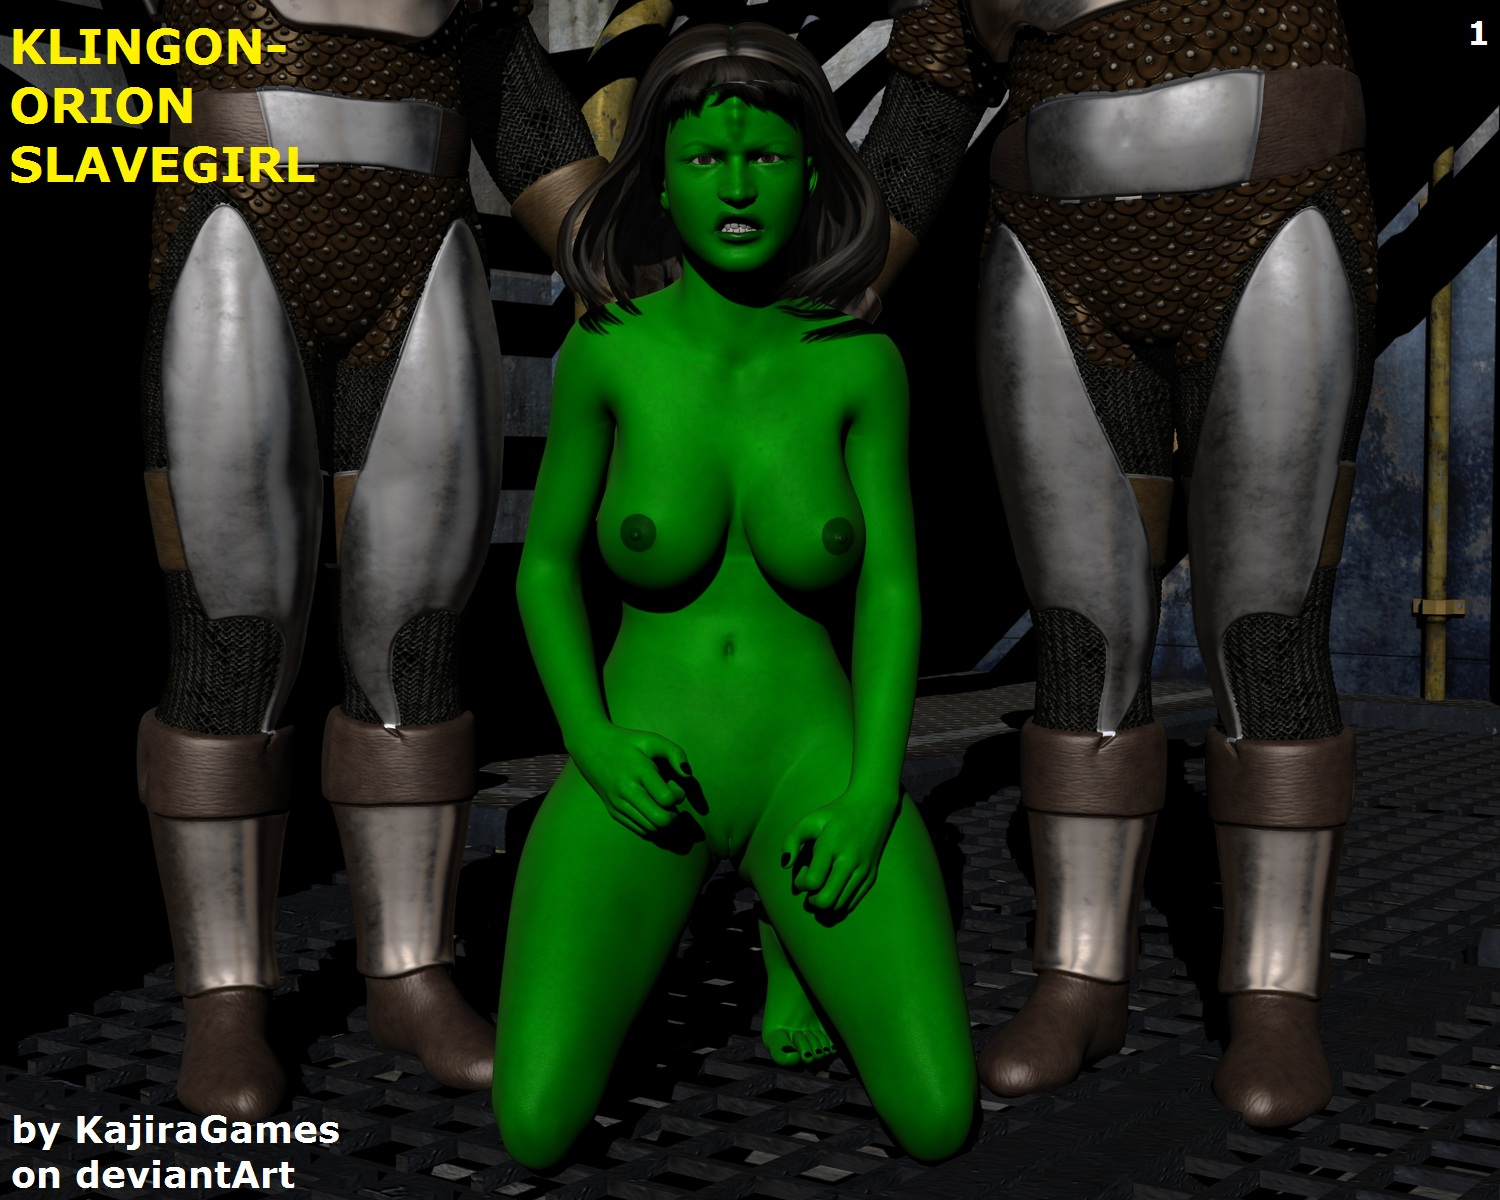 Orion slave girl fucking Prompt, where